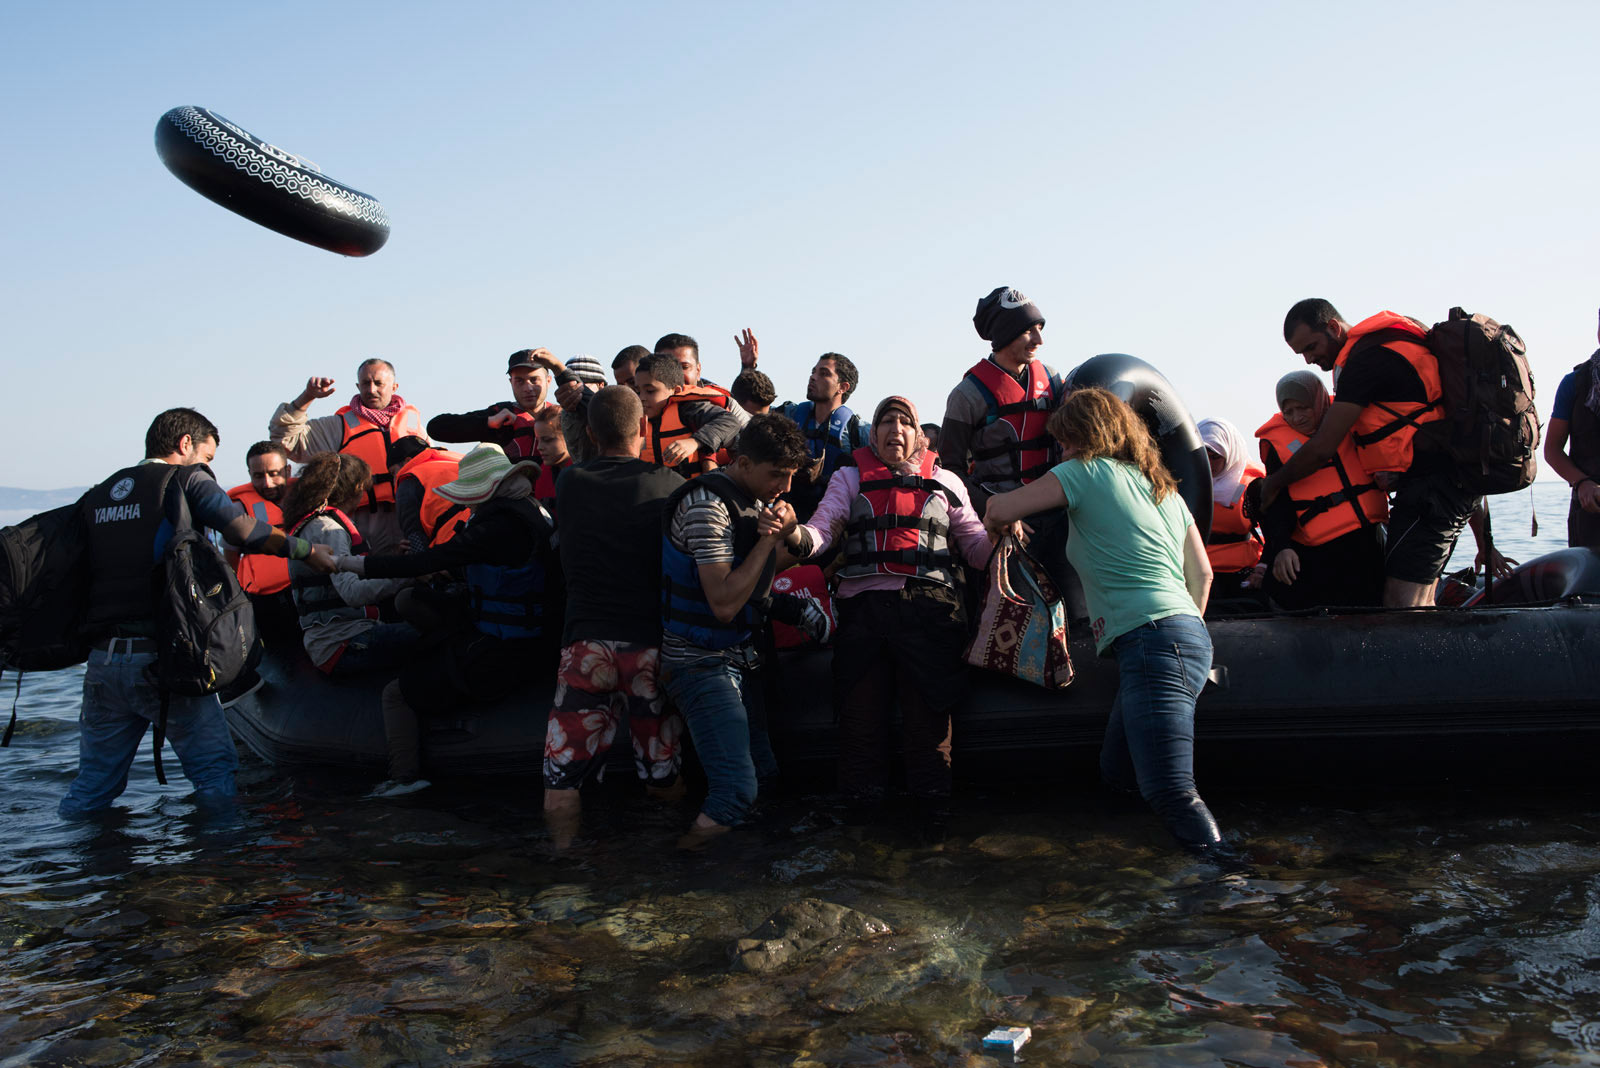 Volunteers from Western Europe help a boat full of migrants from Syria and Afghanistan come ashore on the Greek island of Lesbos, Greece, Sept. 4, 2015.